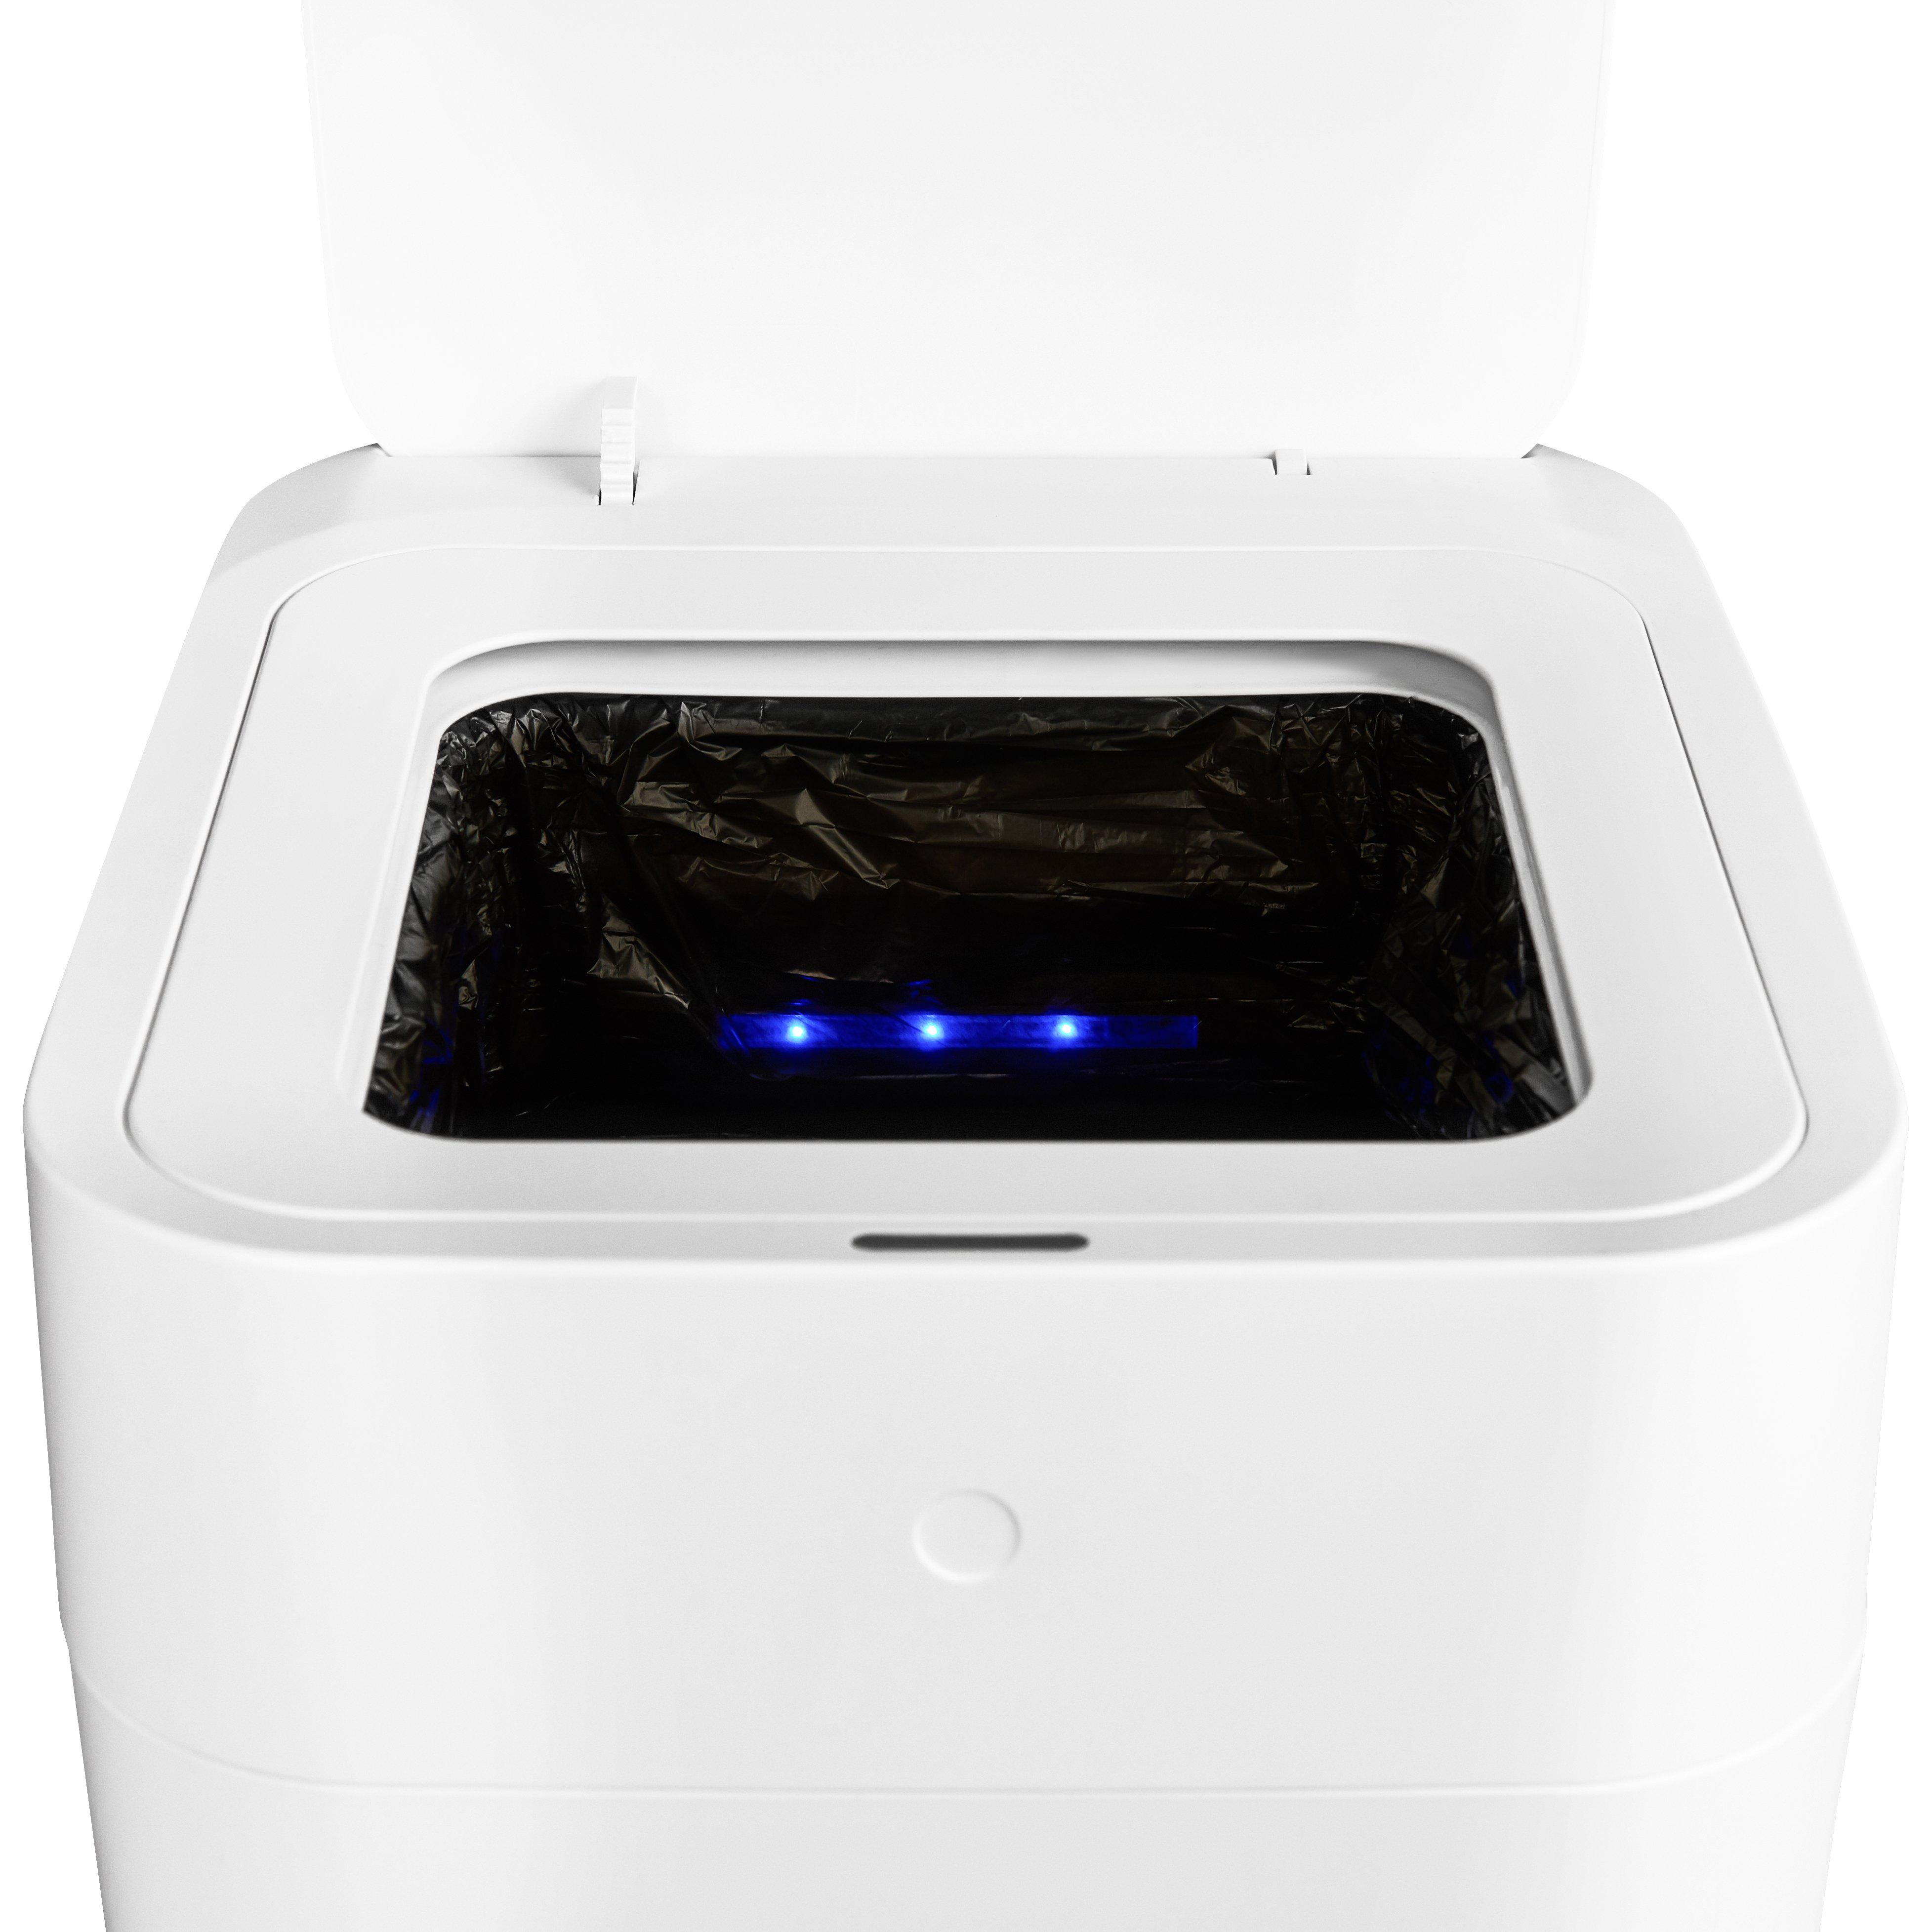 [US Direct] TOWNEW T1S Self-Sealing and Self-Changing 4 Gallon Trash Can | Automatic Open Lid and Motion Sense Activated Garbage Bin | Smart Home Electric Trash Cans - White x1 Refill Ring Included (Up to 25 Bags) 29*36*49